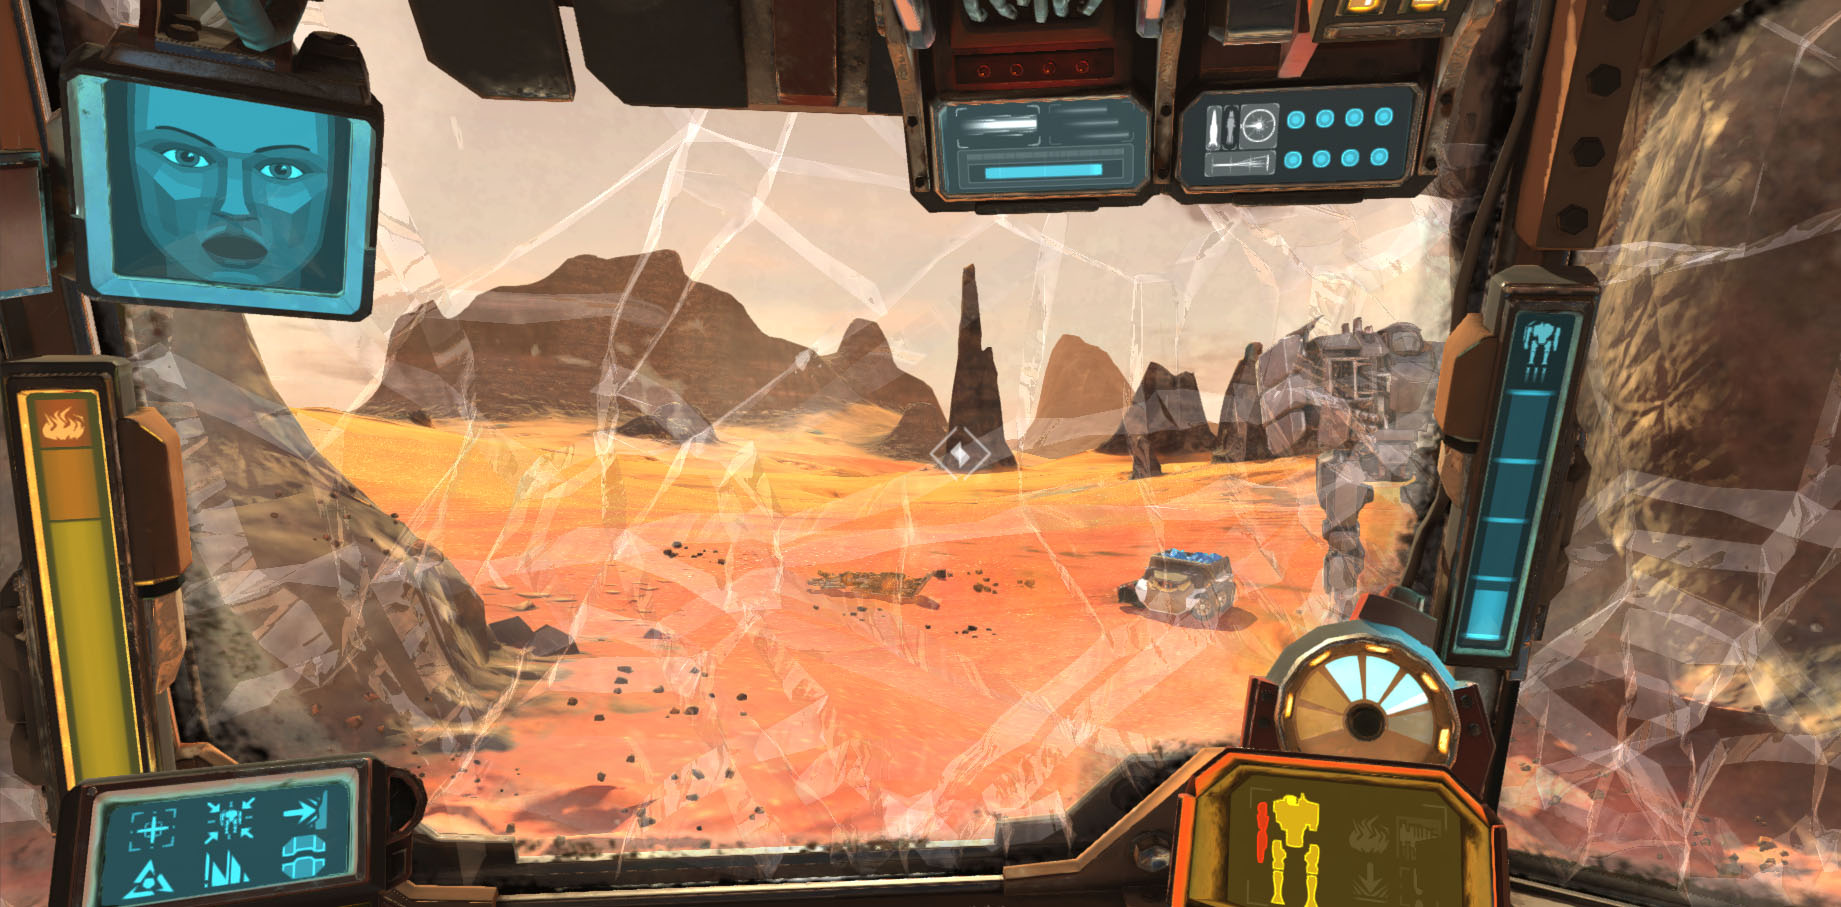 Vox Machinae' Latest Update Includes Multiplayer and Better